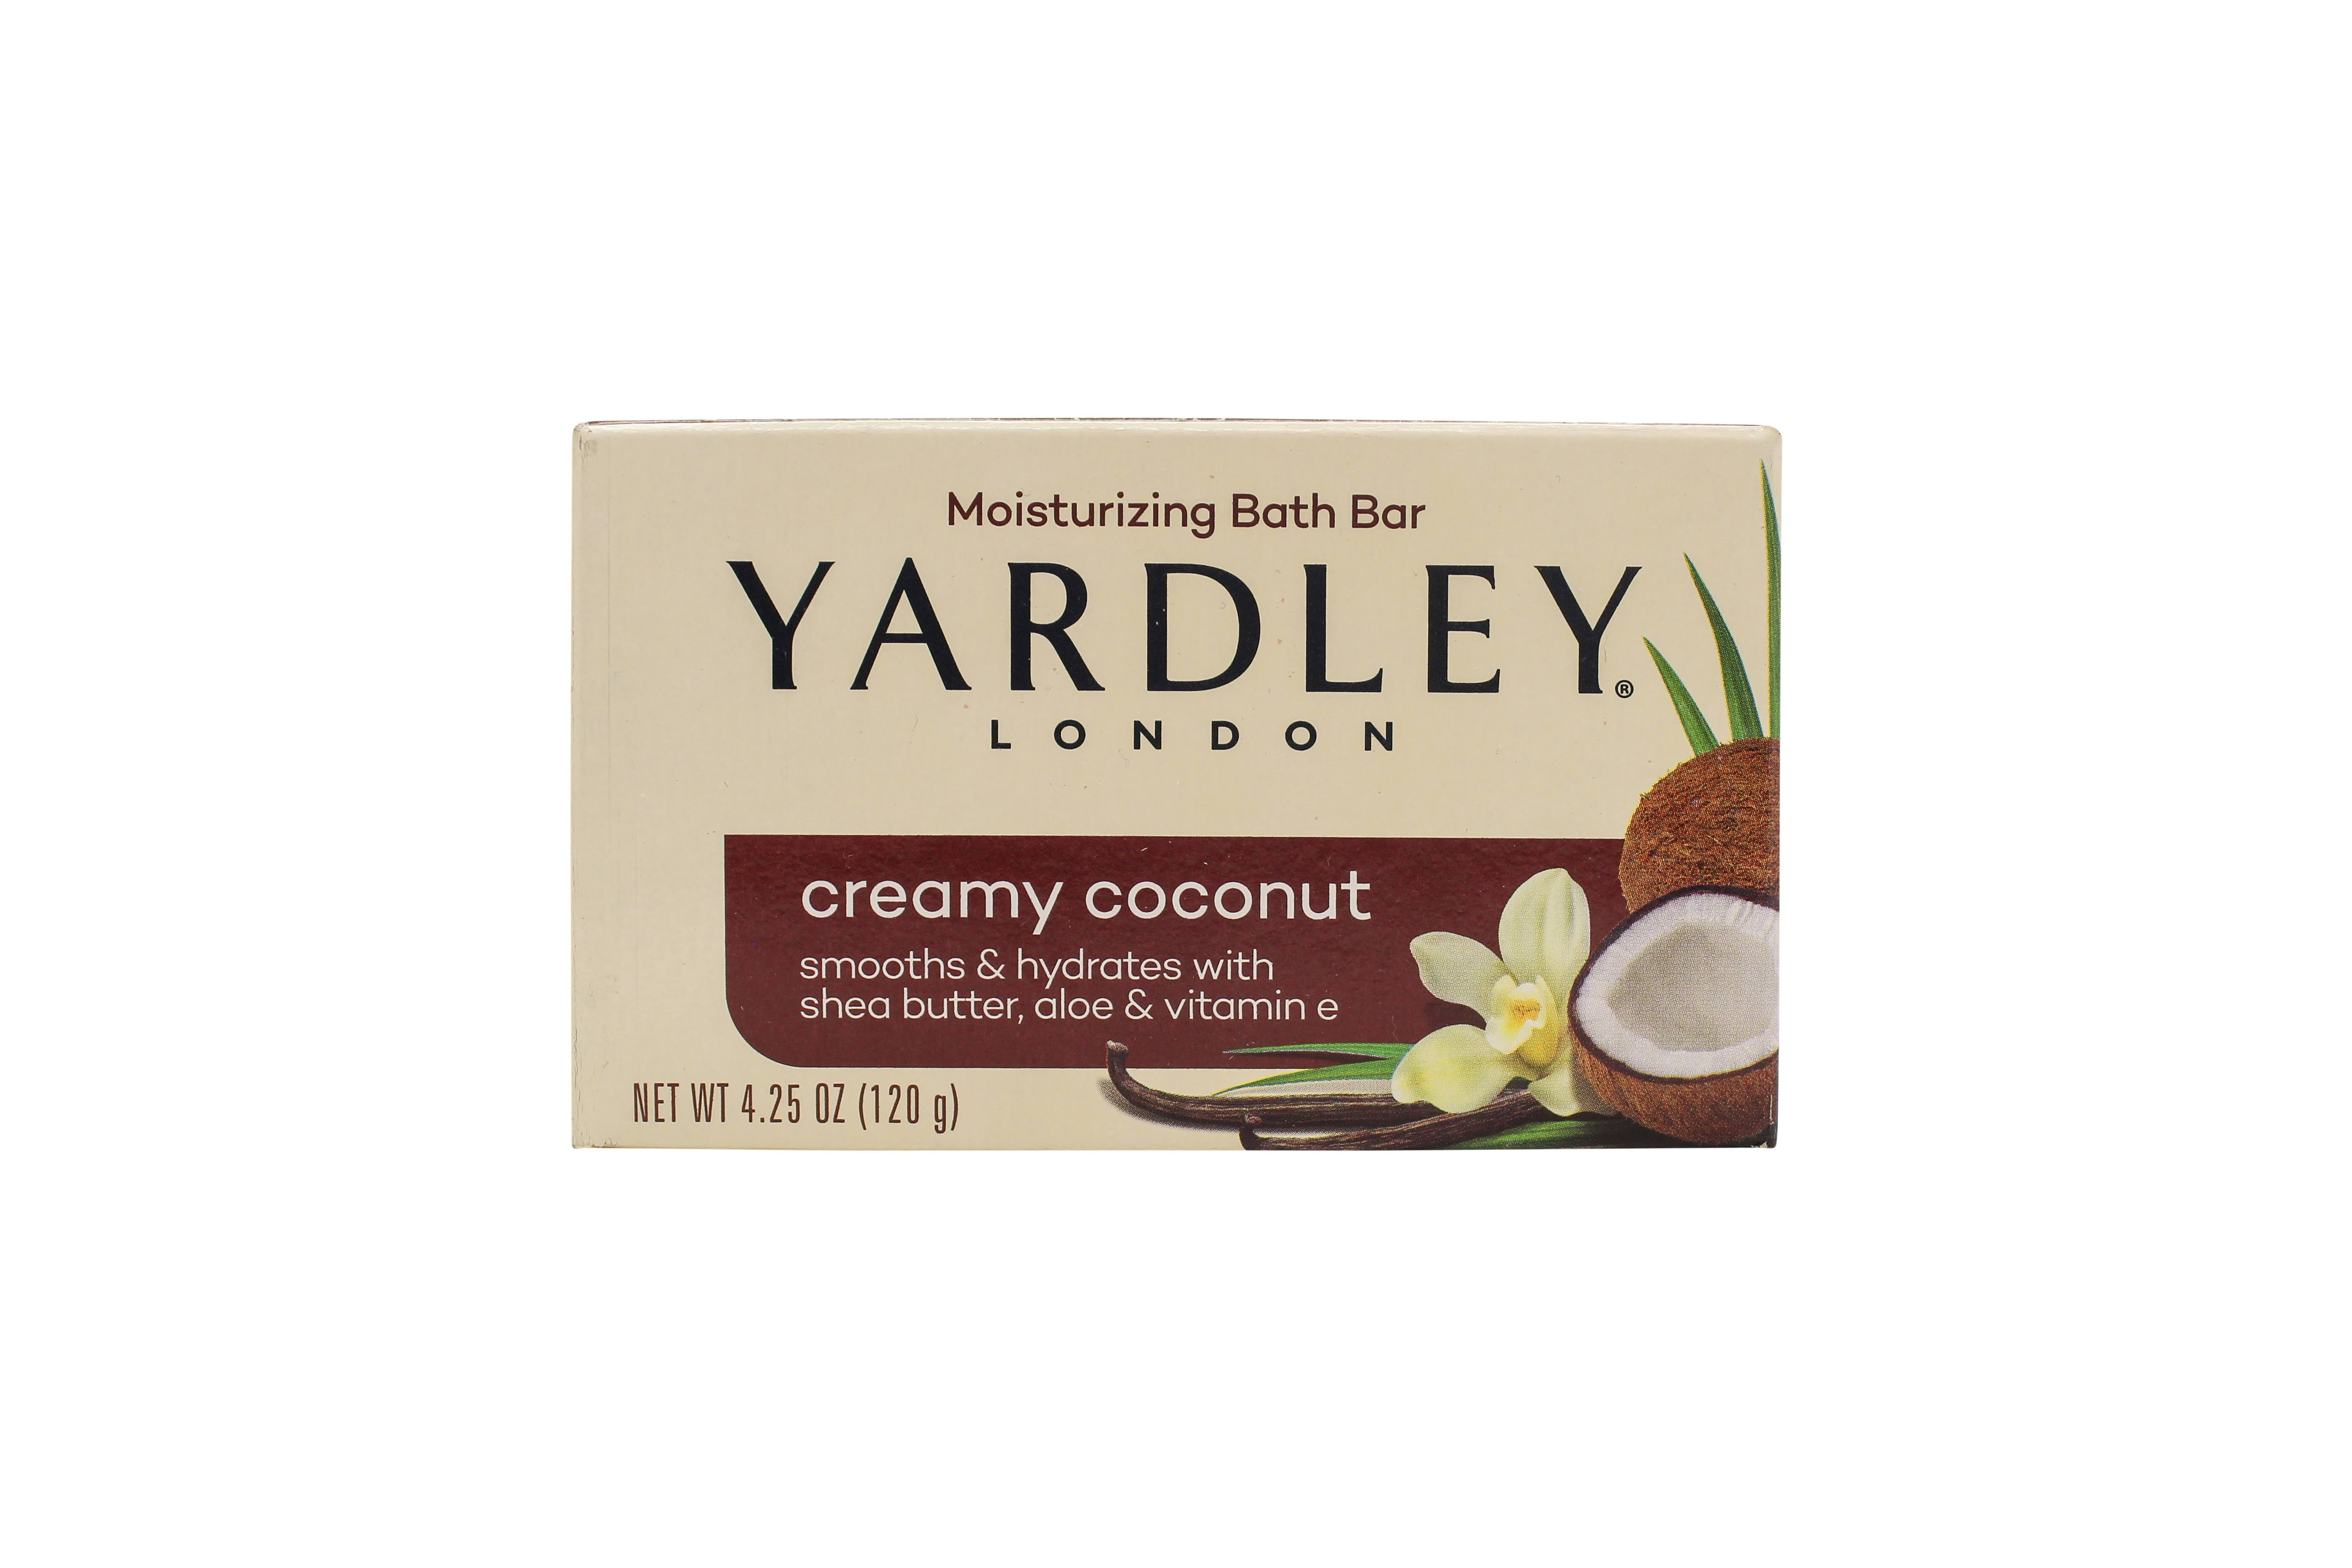 Yardley London Moisturizing Bath Bar - Creamy Coconut, 4.25oz